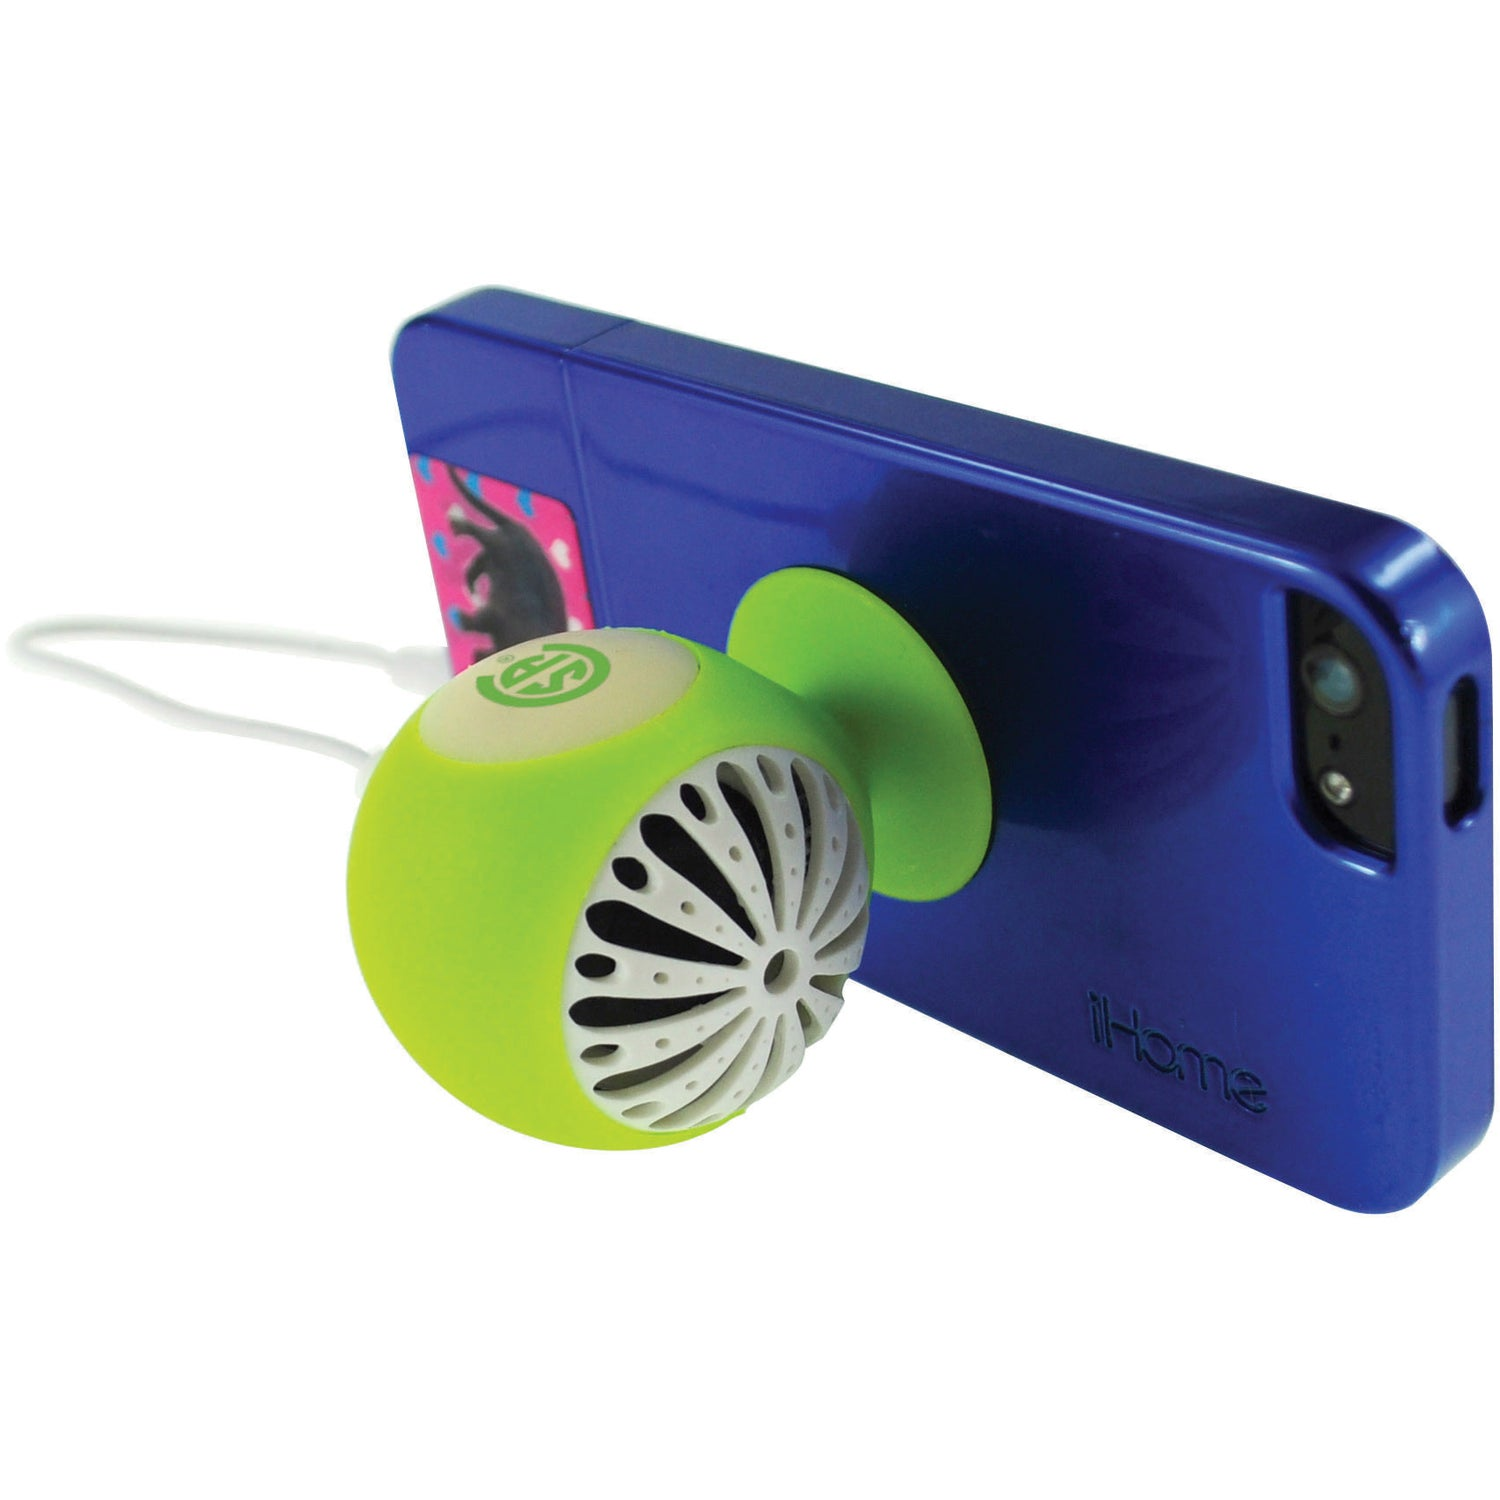 Promotional Fusebox Speaker and Phone Holders with Custom Logo for $6.16 Ea.